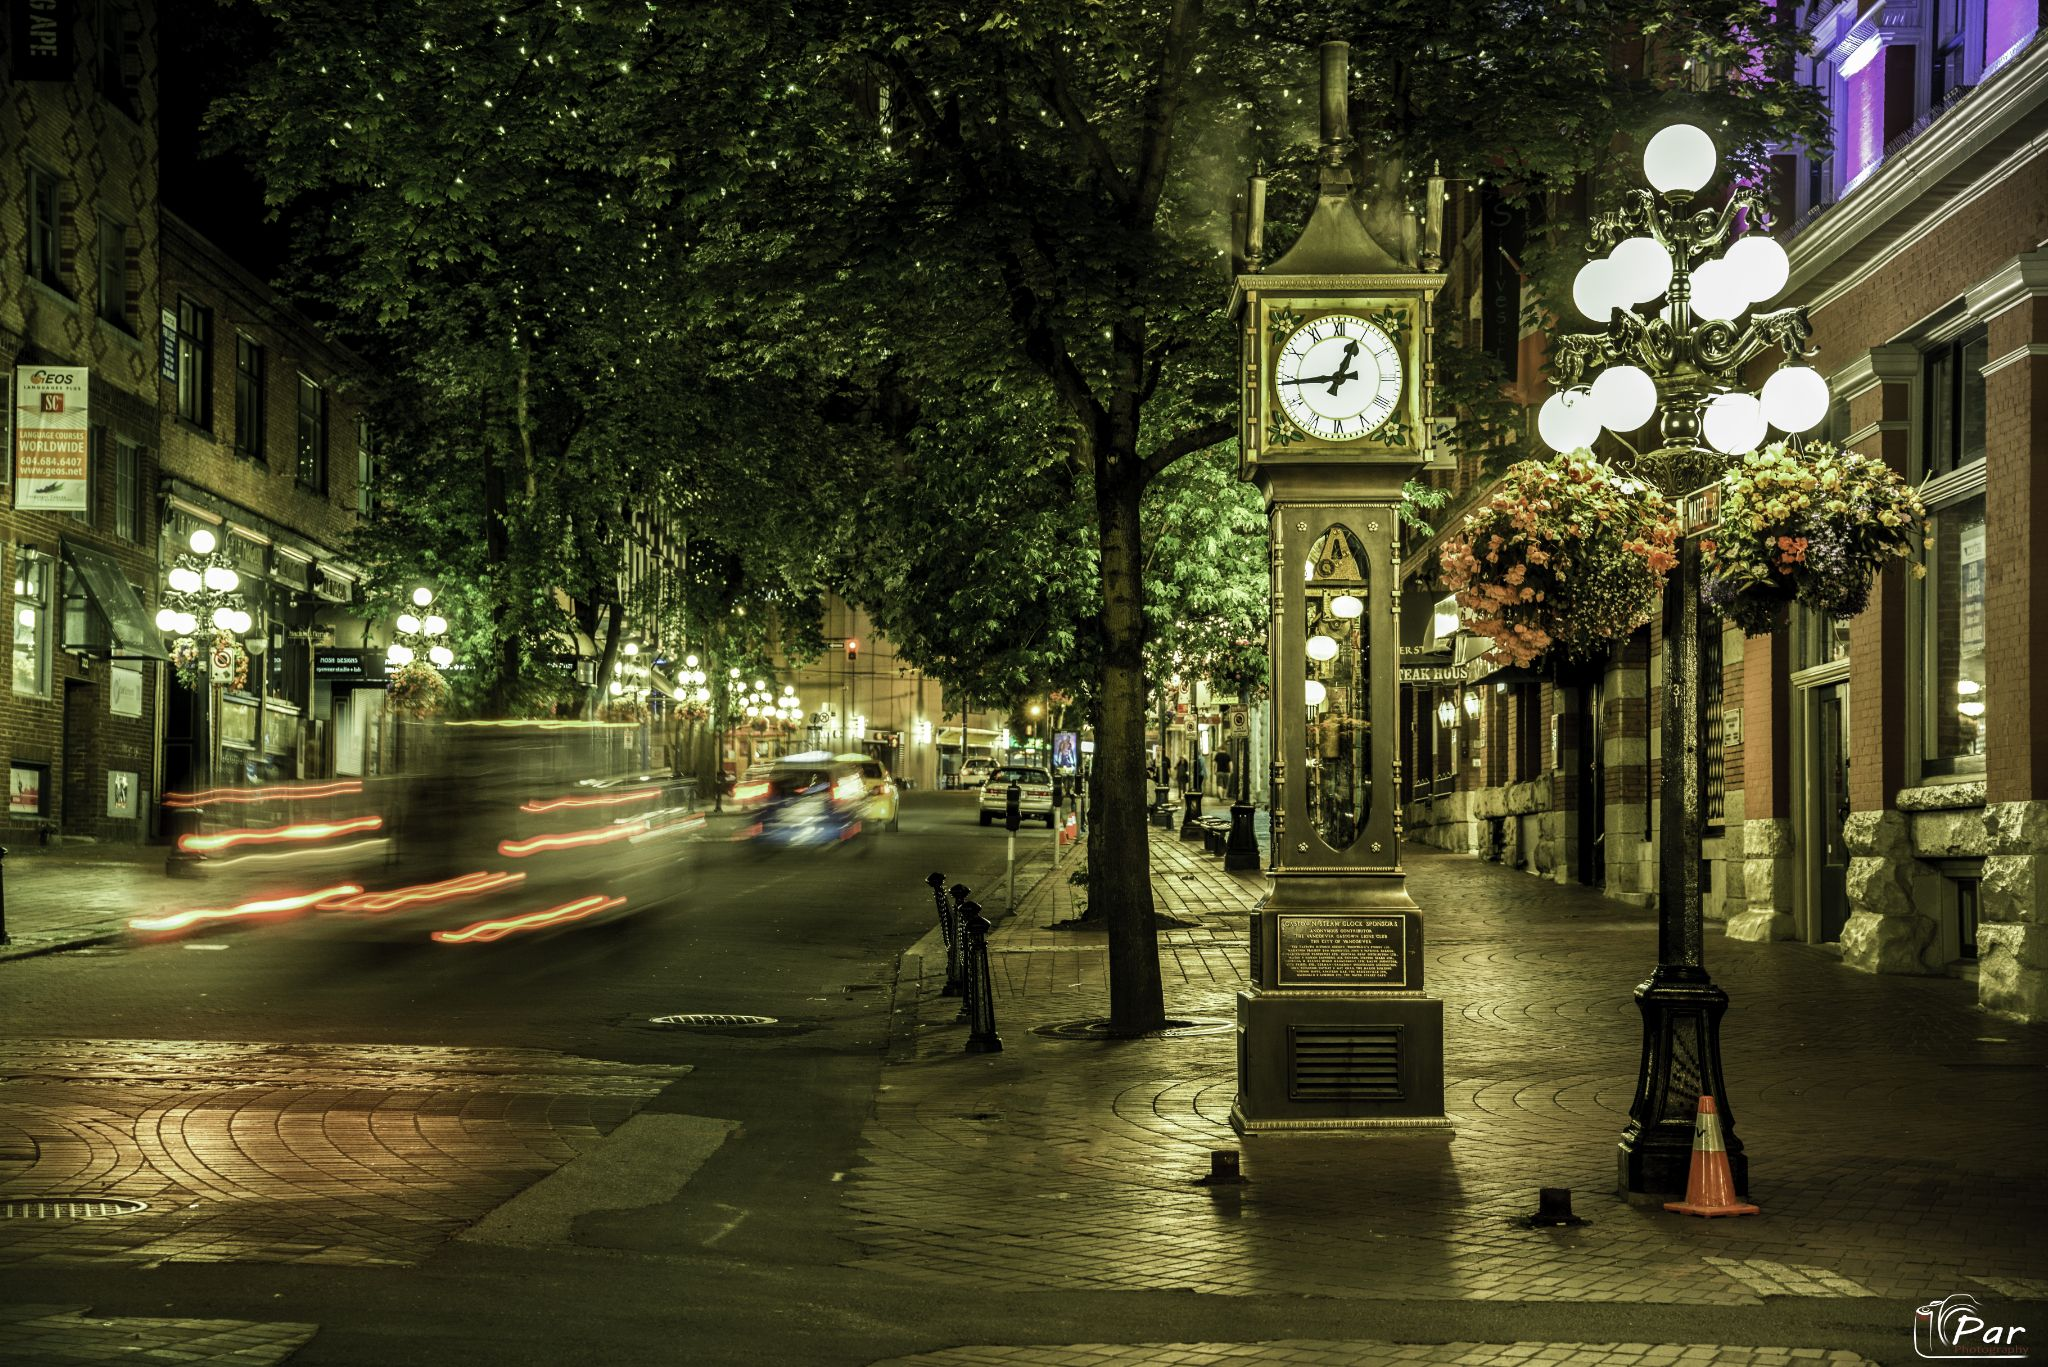 Steam Clock Gastown Vancouver by Par Photography